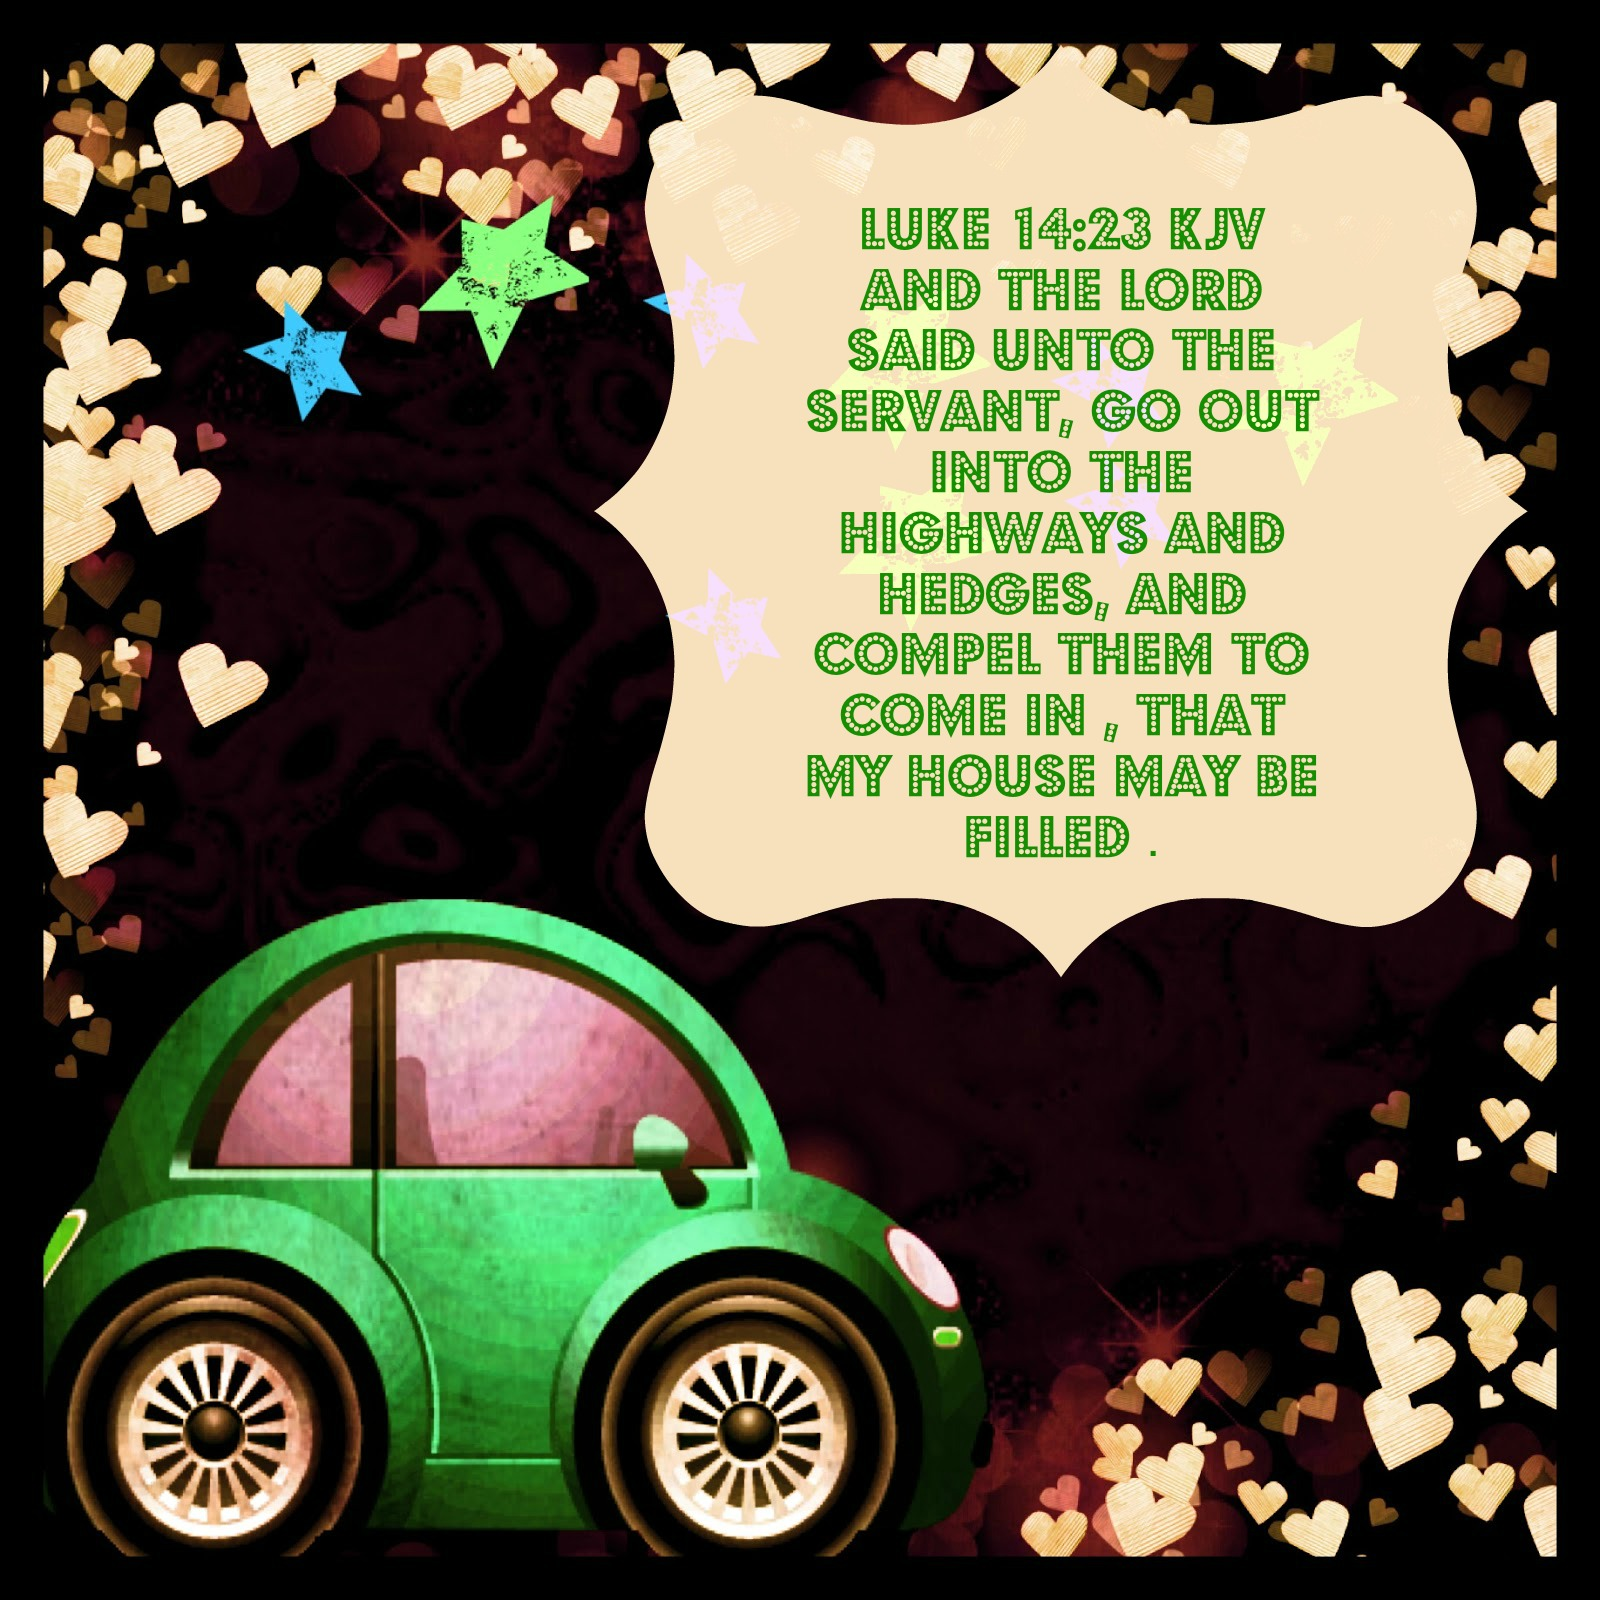 Wallpaper Treasure Who Invented The Automobile: Christian Images In My Treasure Box: Car